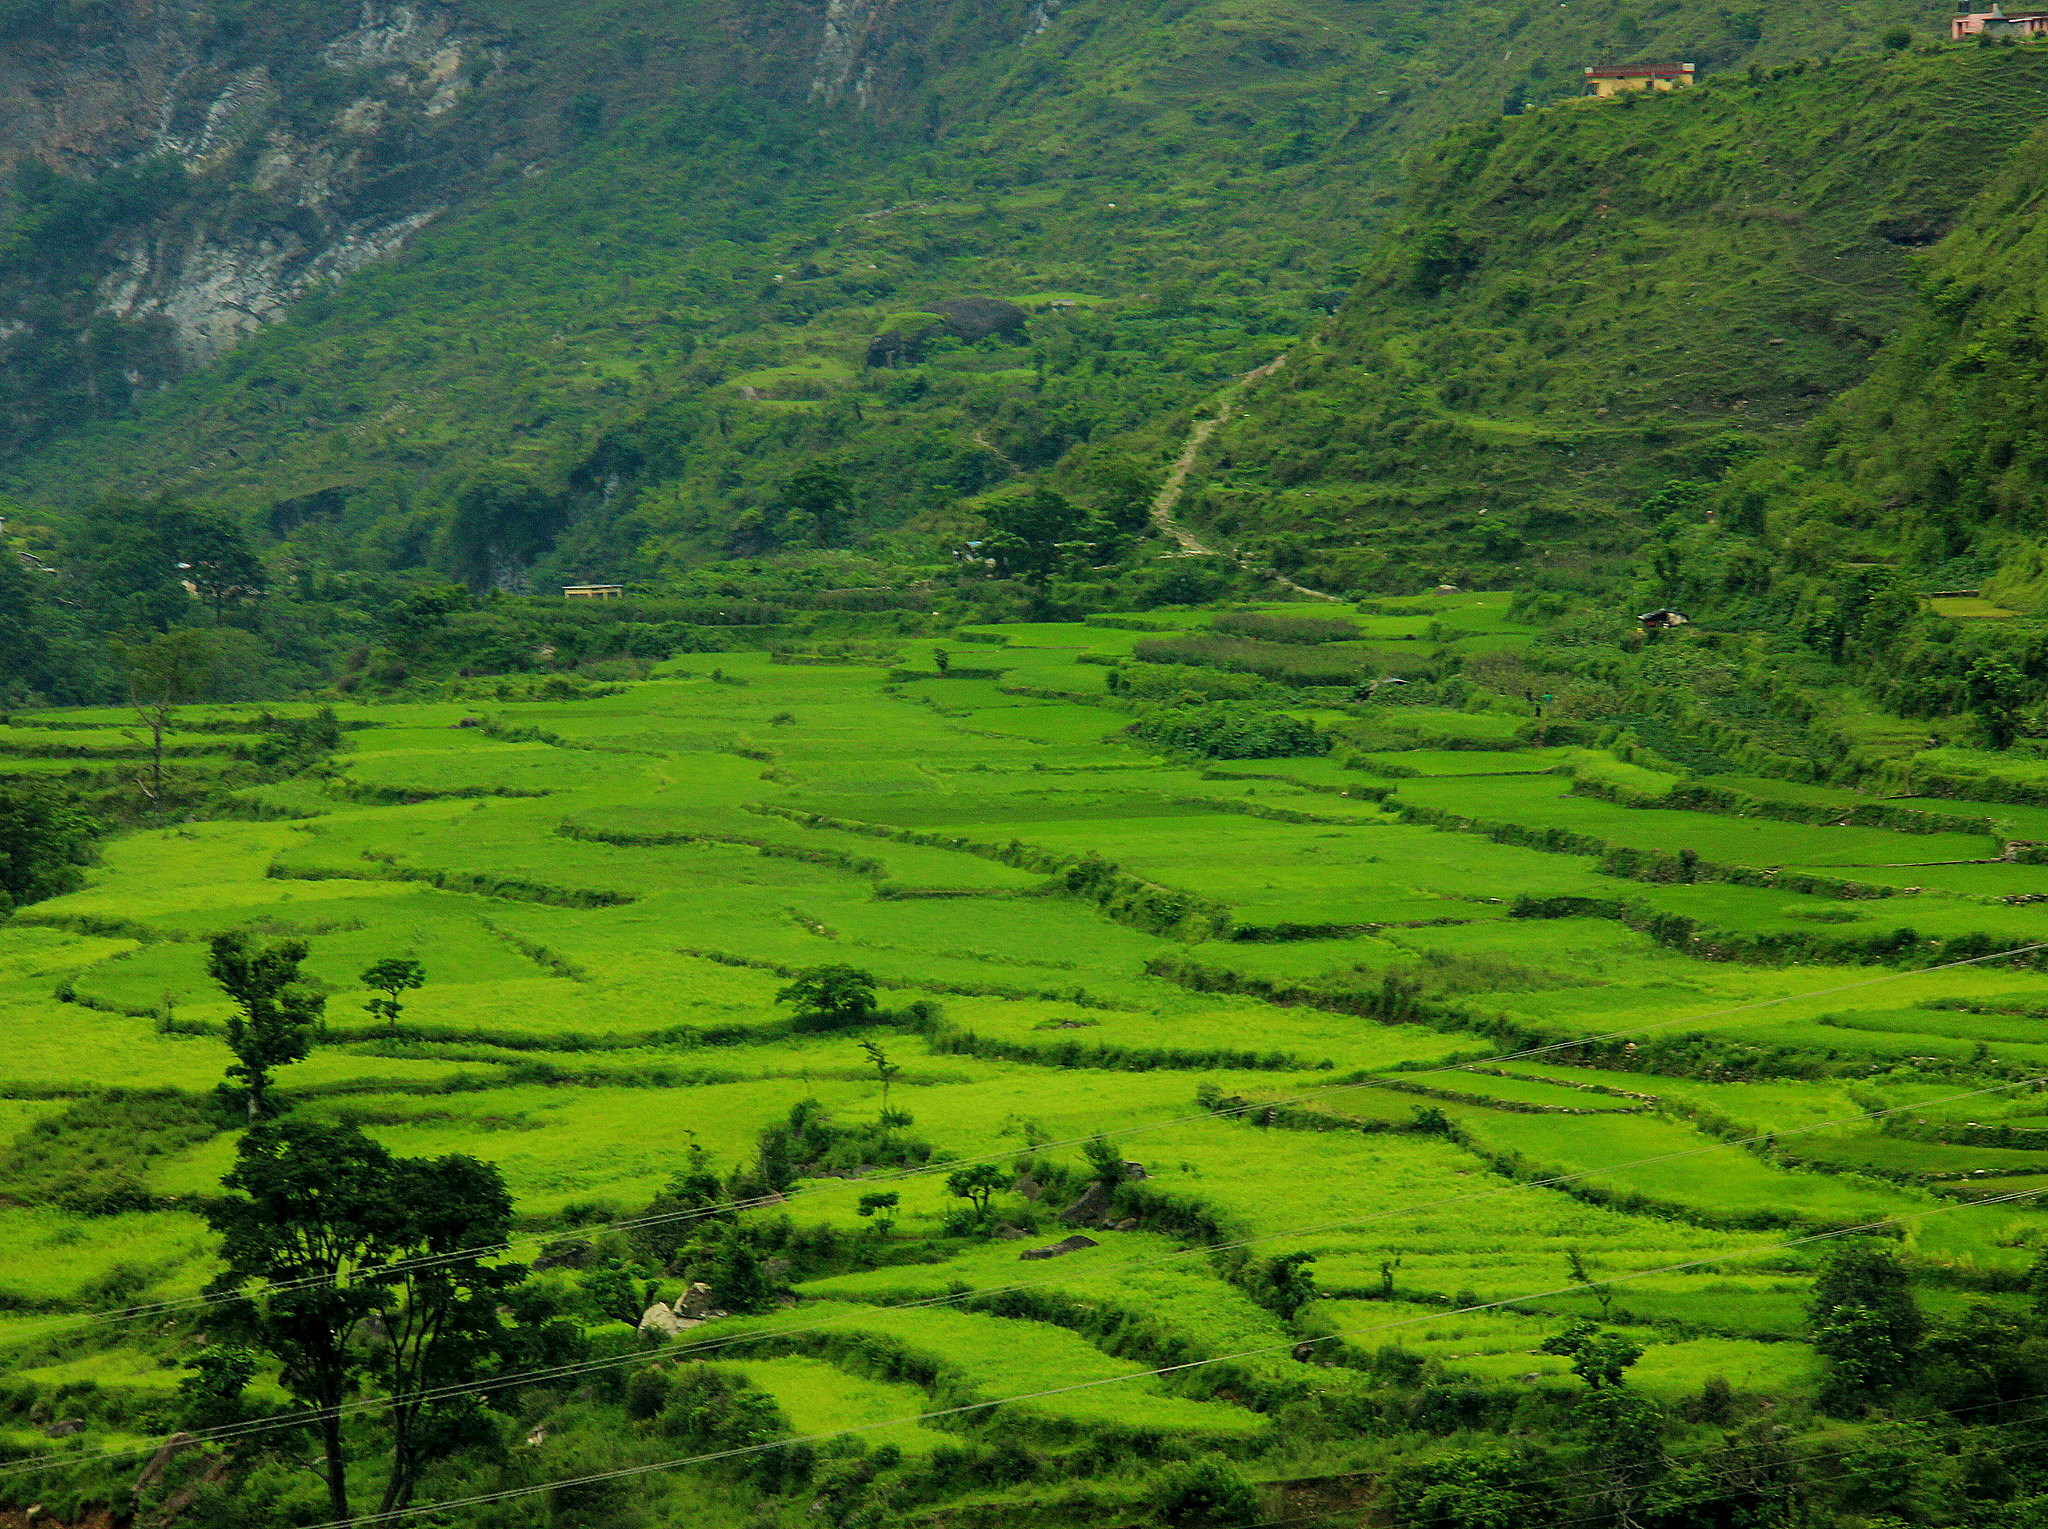 Rice is cultivated around the villages at uttarakhand prayags